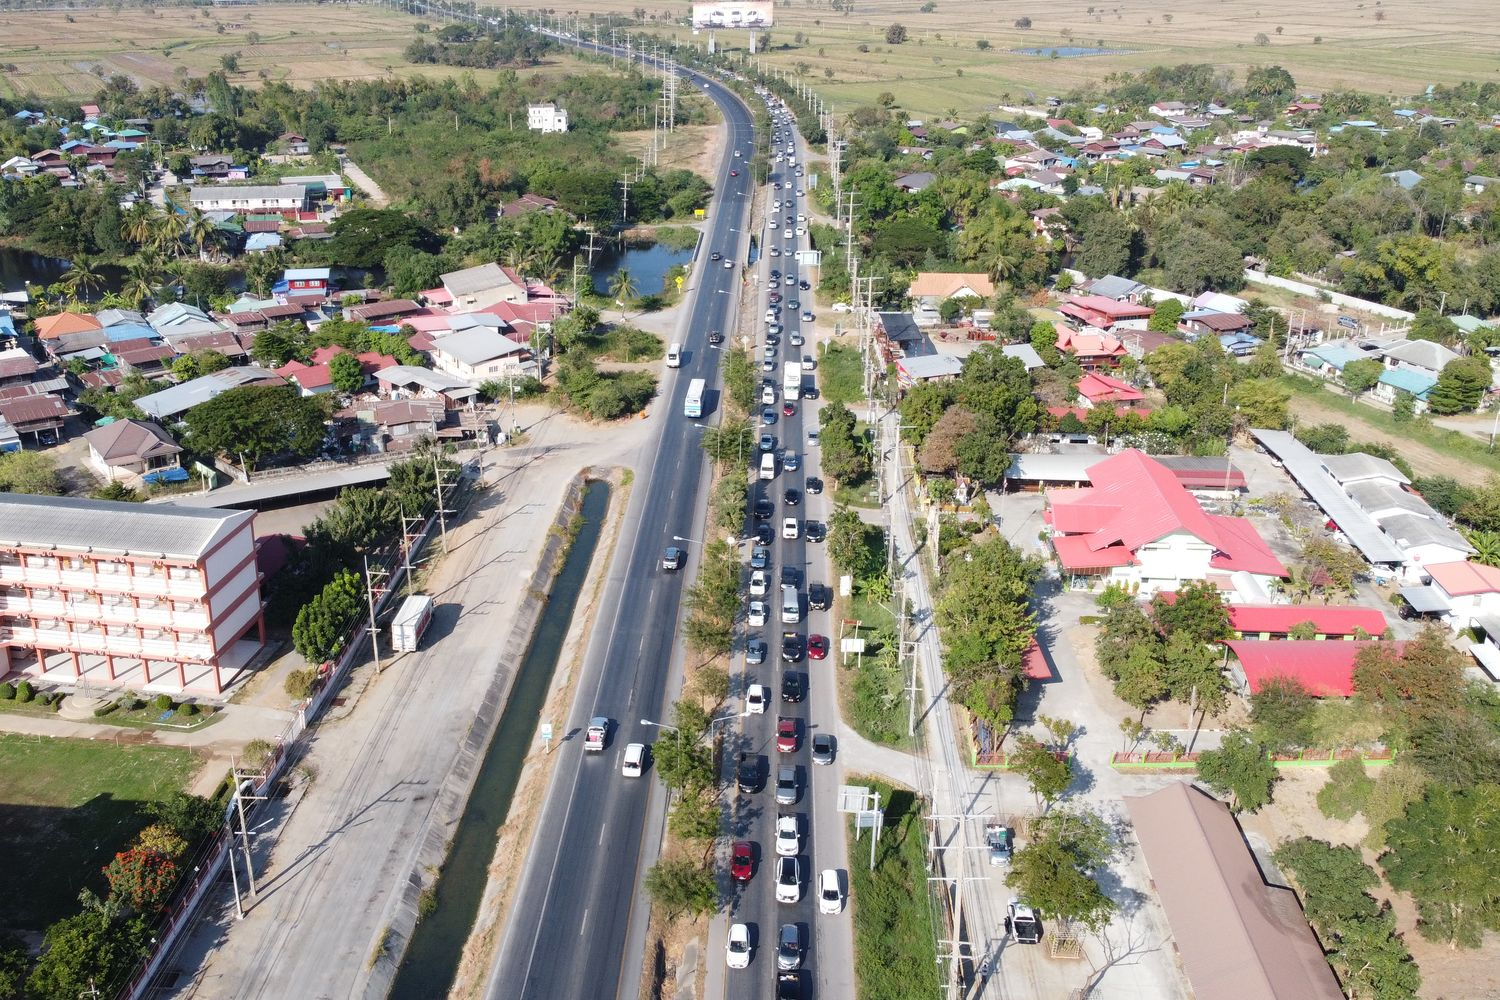 Traffic builds up on Mittraphap Road in Nakhon Ratchasima on Saturday morning as some people hit the road early to return to work in Bangkok on Monday. (Photo by Prasit Tangprasert)